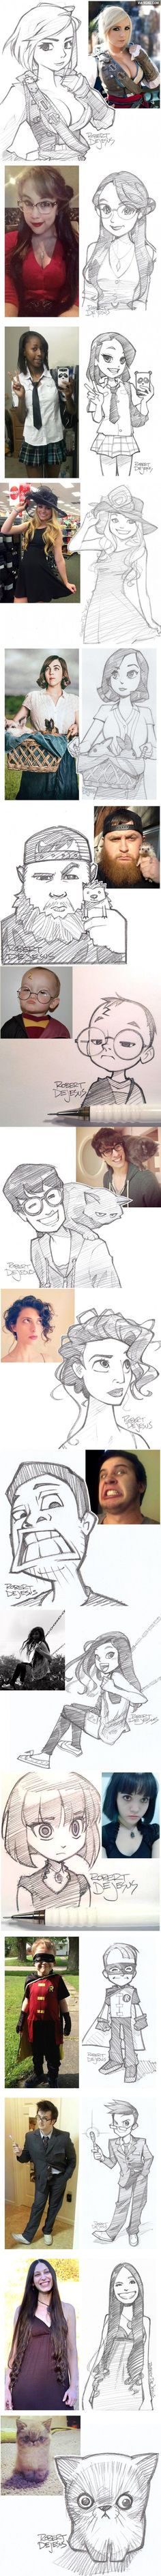 People And Their Cartoon Version § Find more artworks: www.pinterest.com/aalishev/pins: